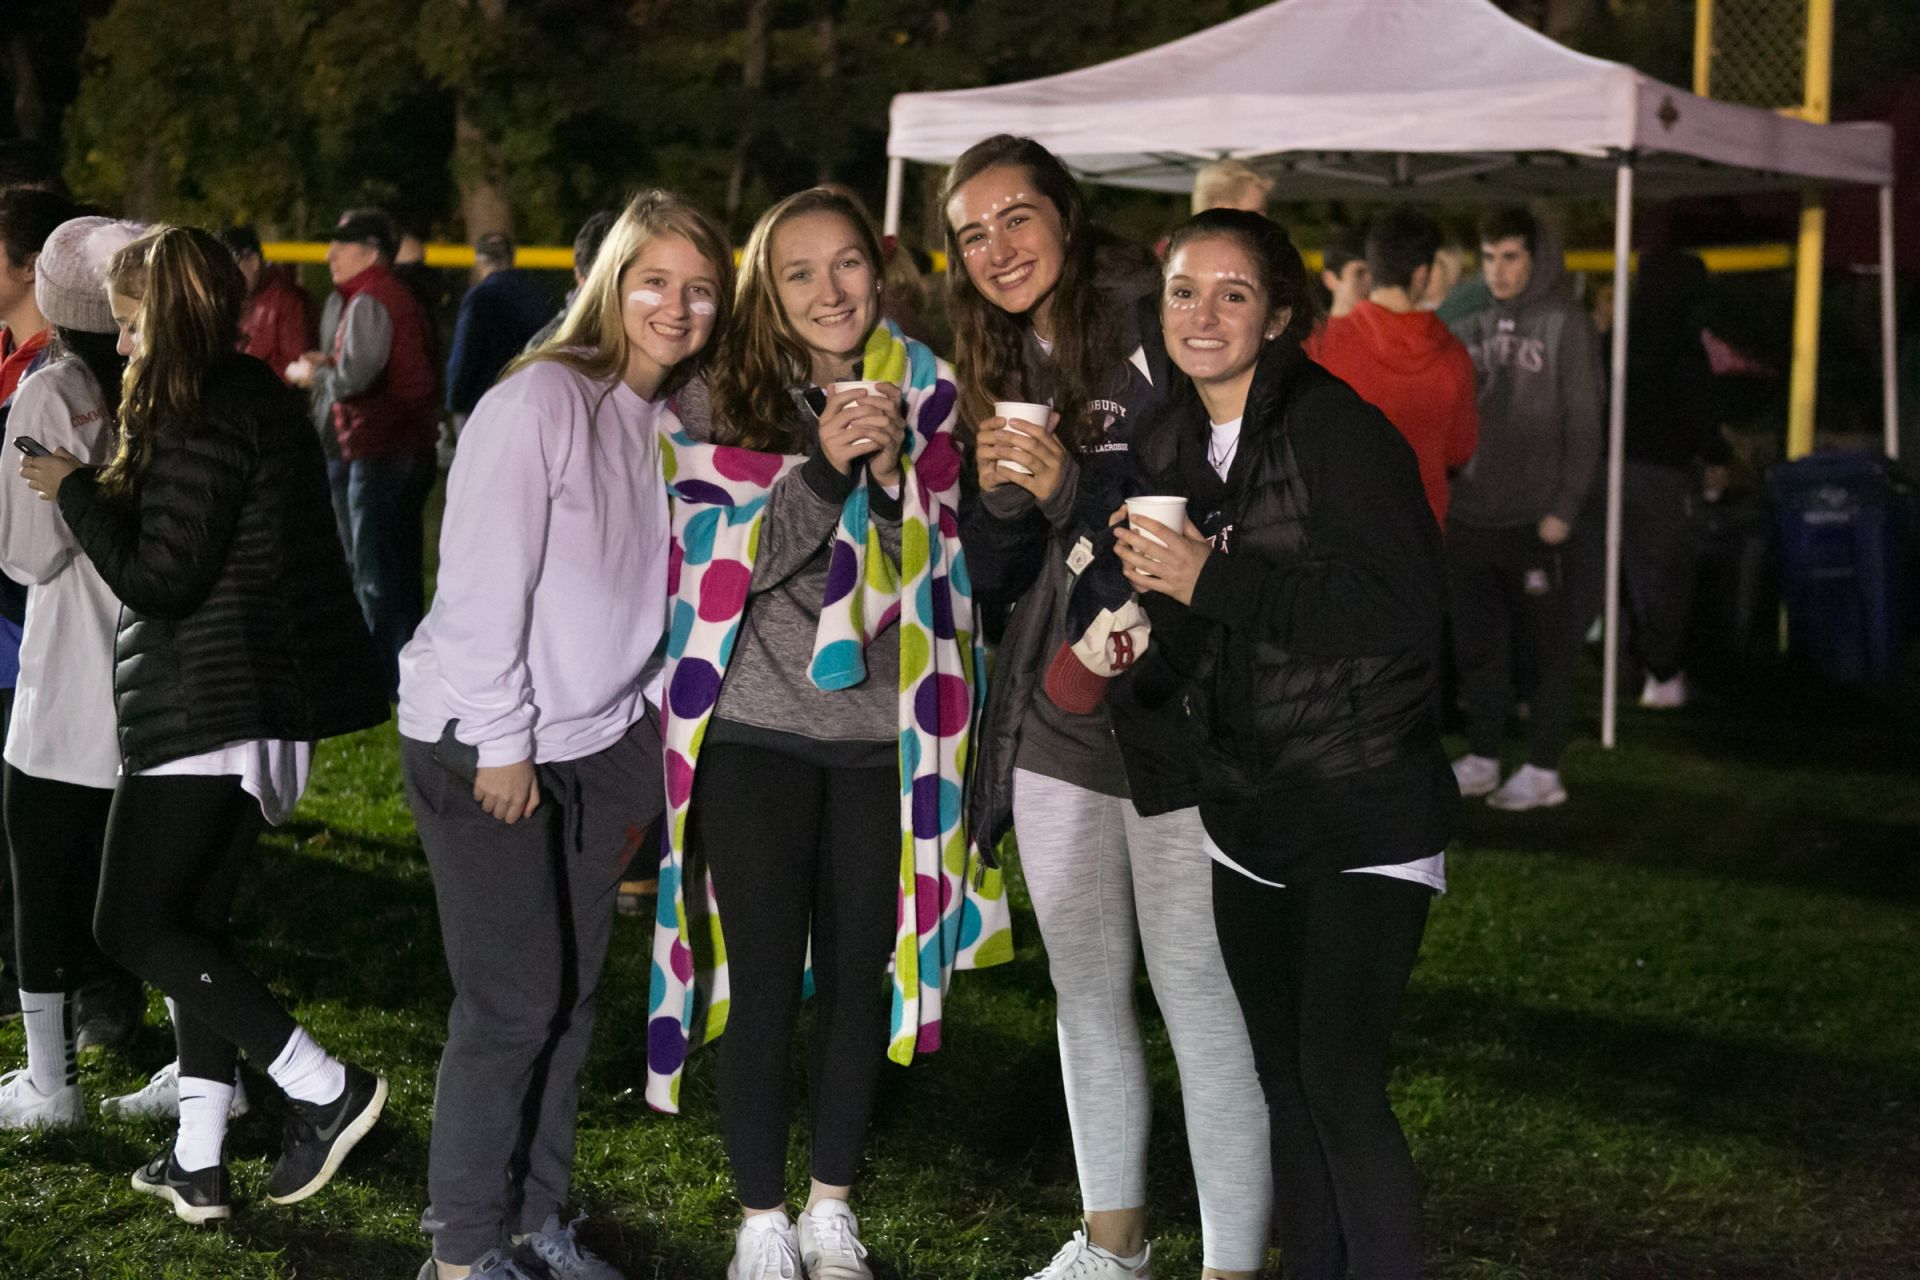 Highlights From Homecoming 2018